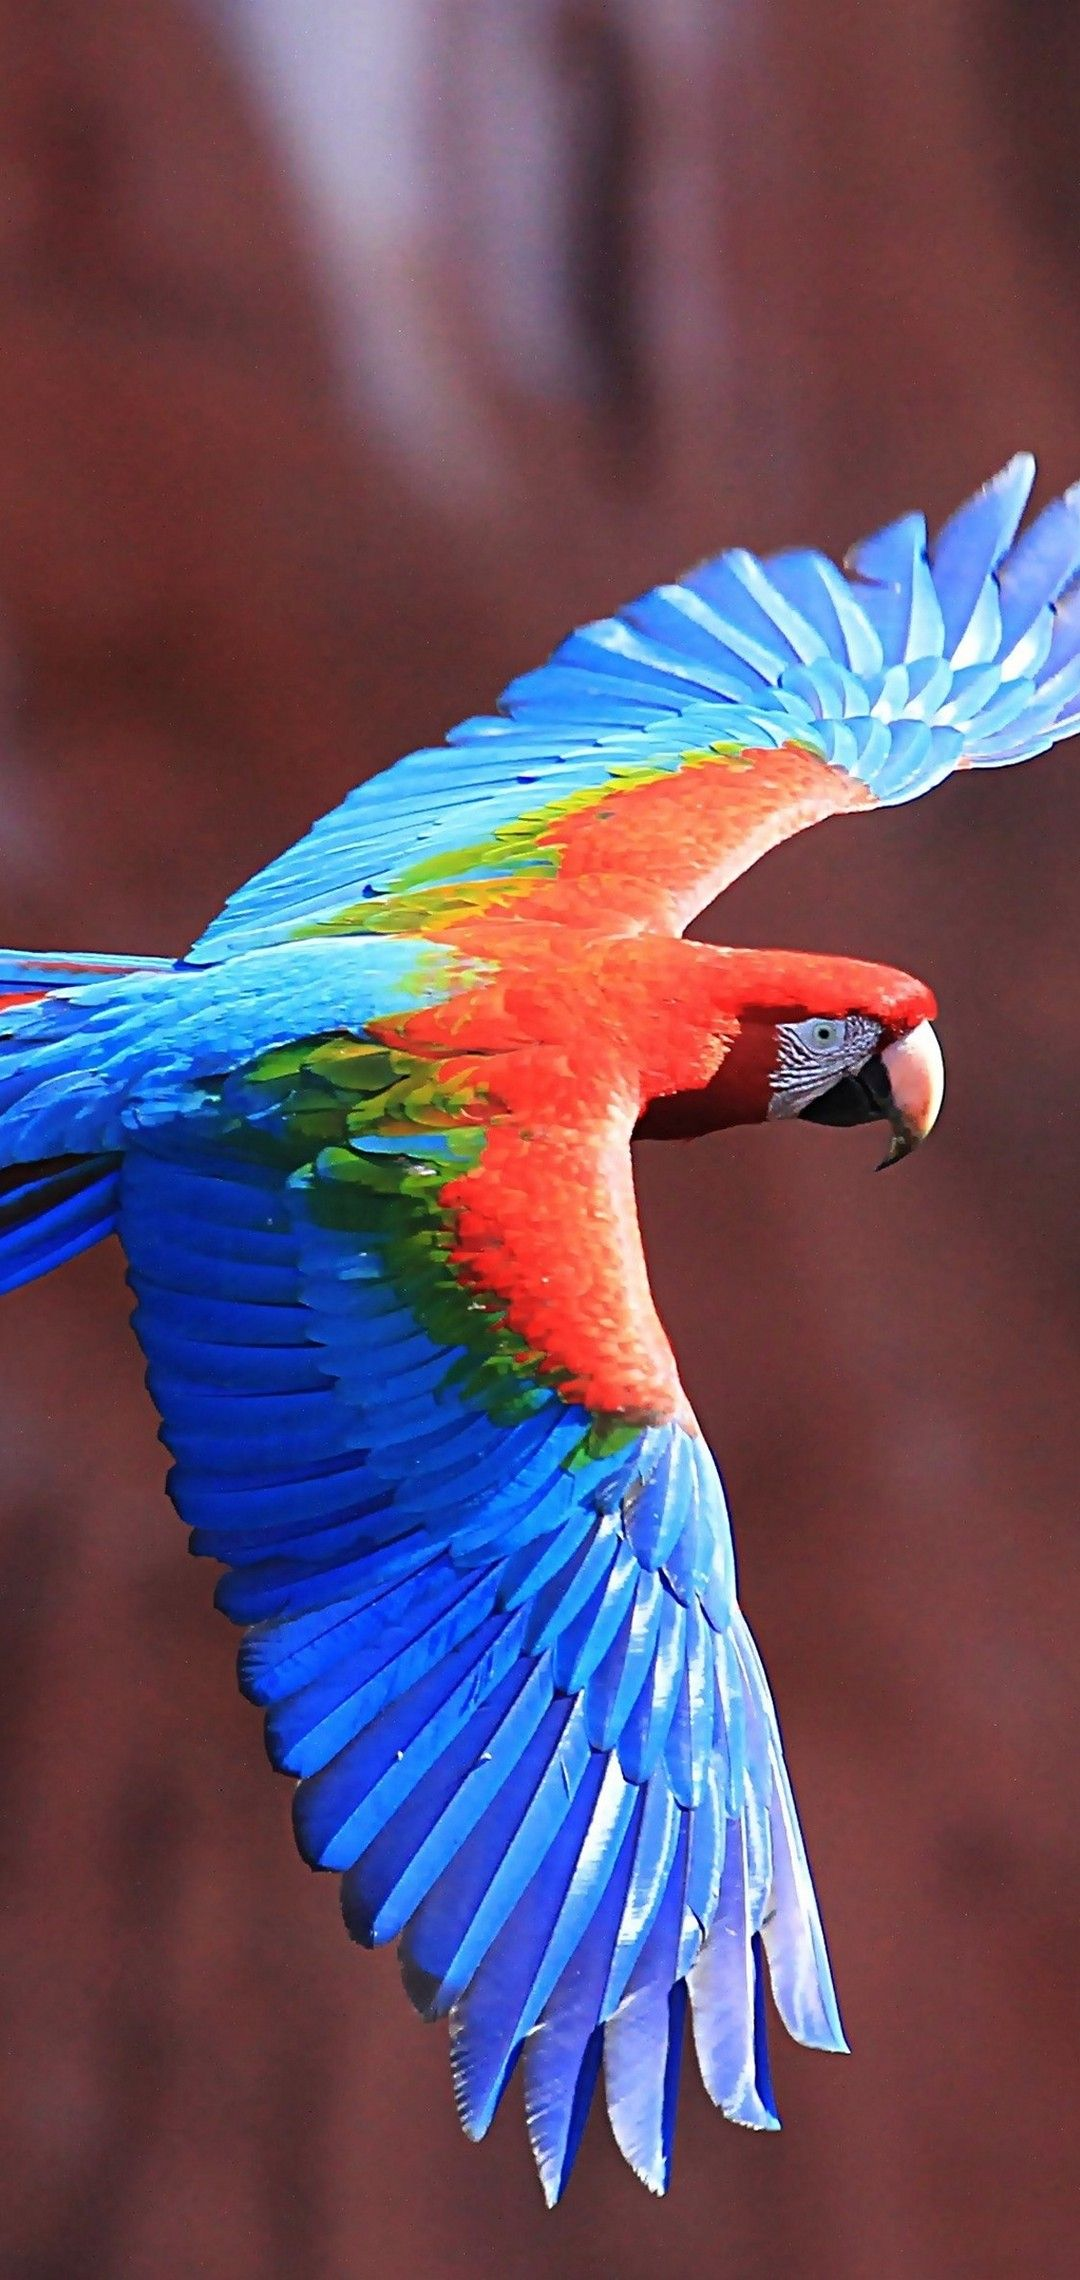 Red-And-Green Macaw Wallpaper - [1080x2280]